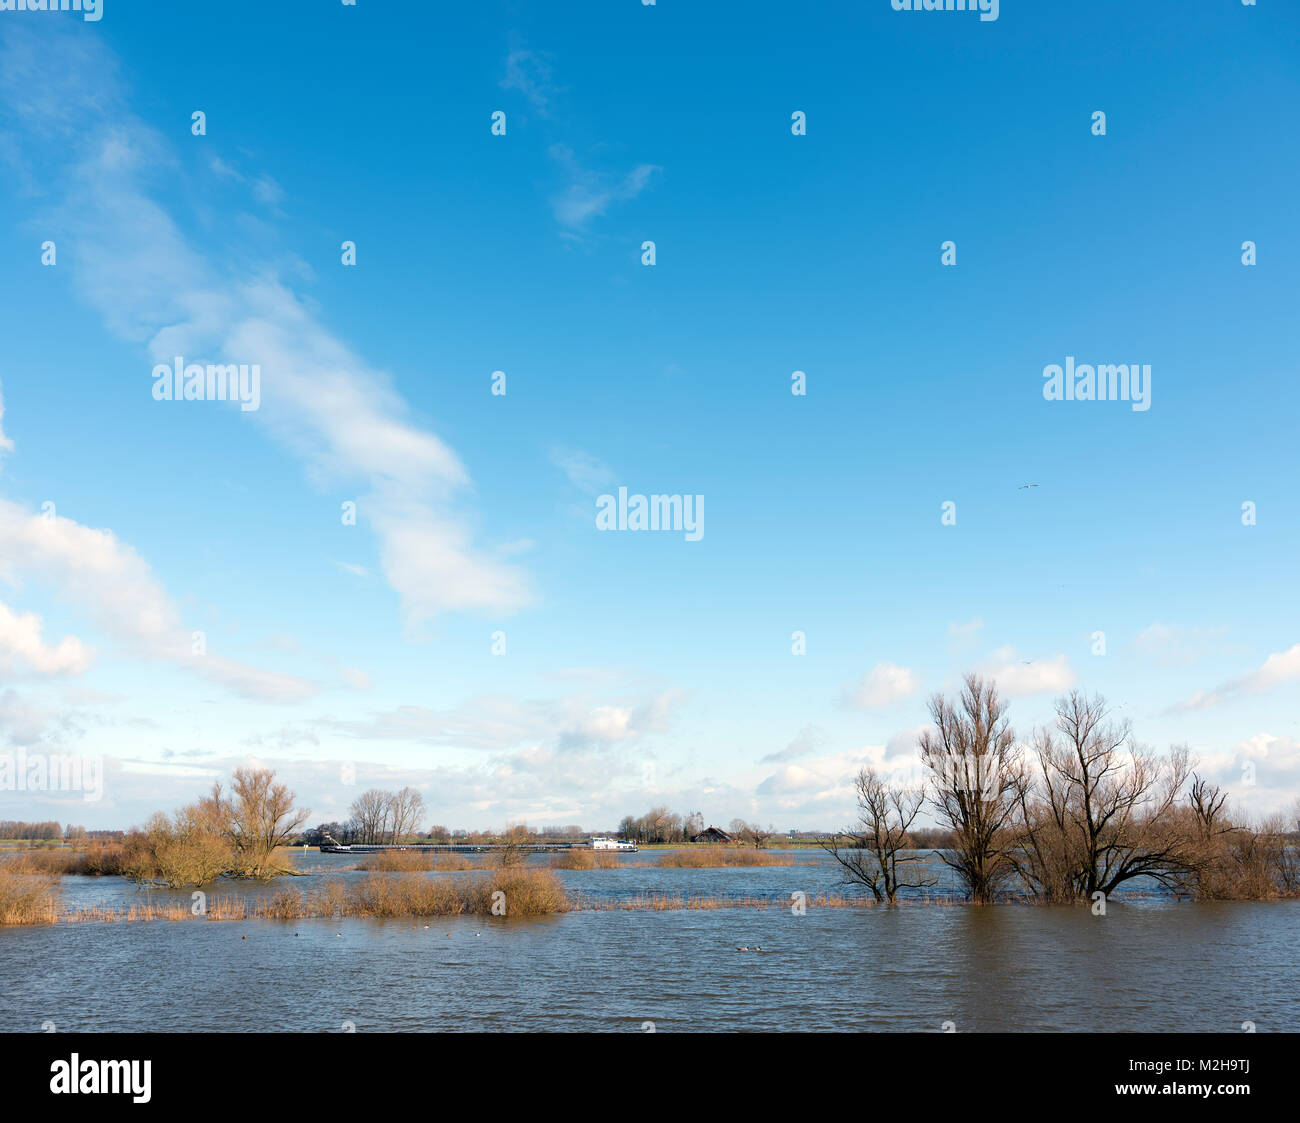 flood plains of river ijssel and ship near Zalk between Kampen and Zwolle in the netherlands Stock Photo